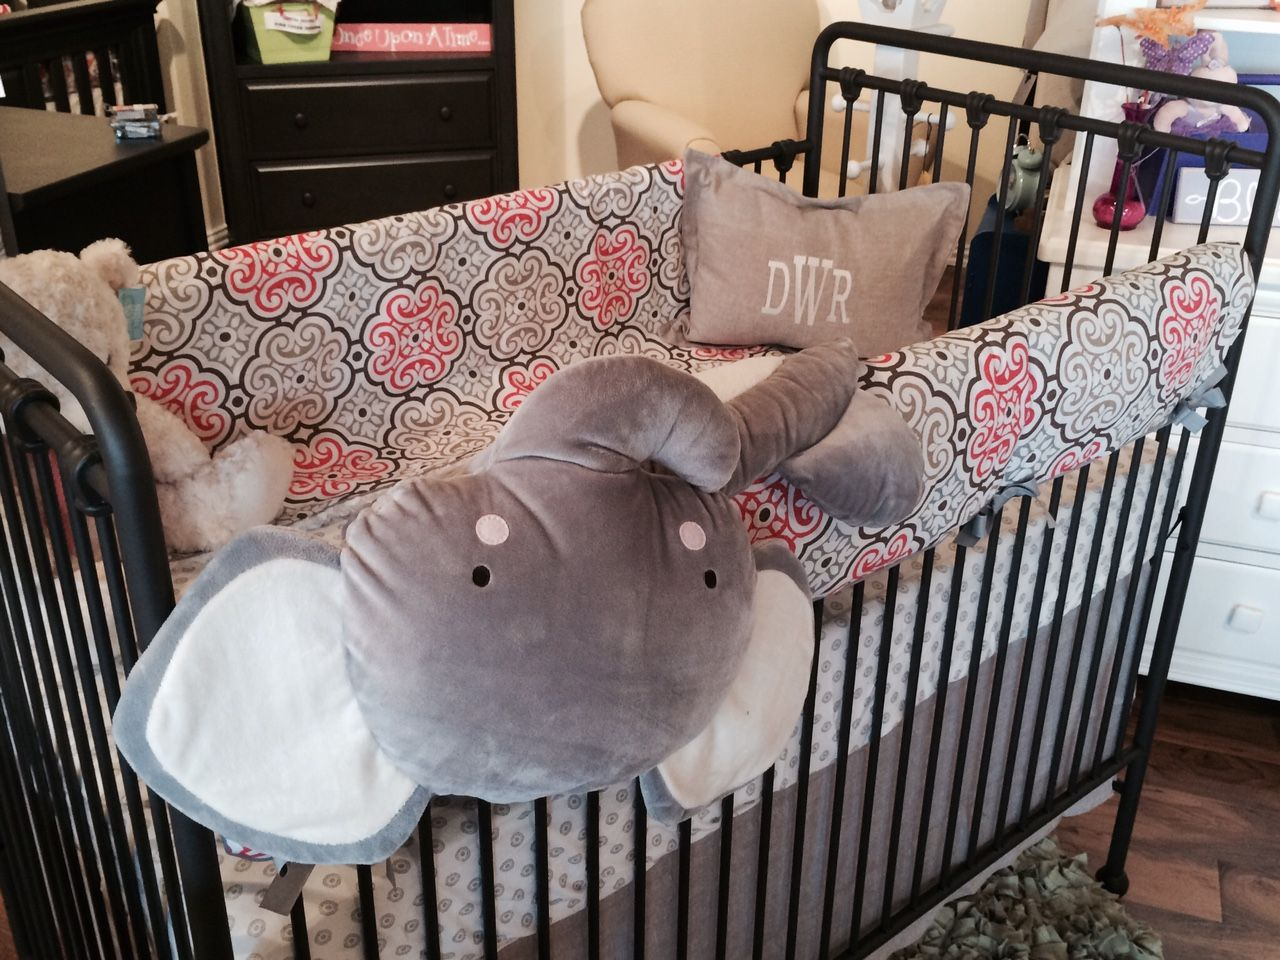 Baby cribs not made in china - Garden Gate Crib Bedding By Liz And Roo Made In Usa Http